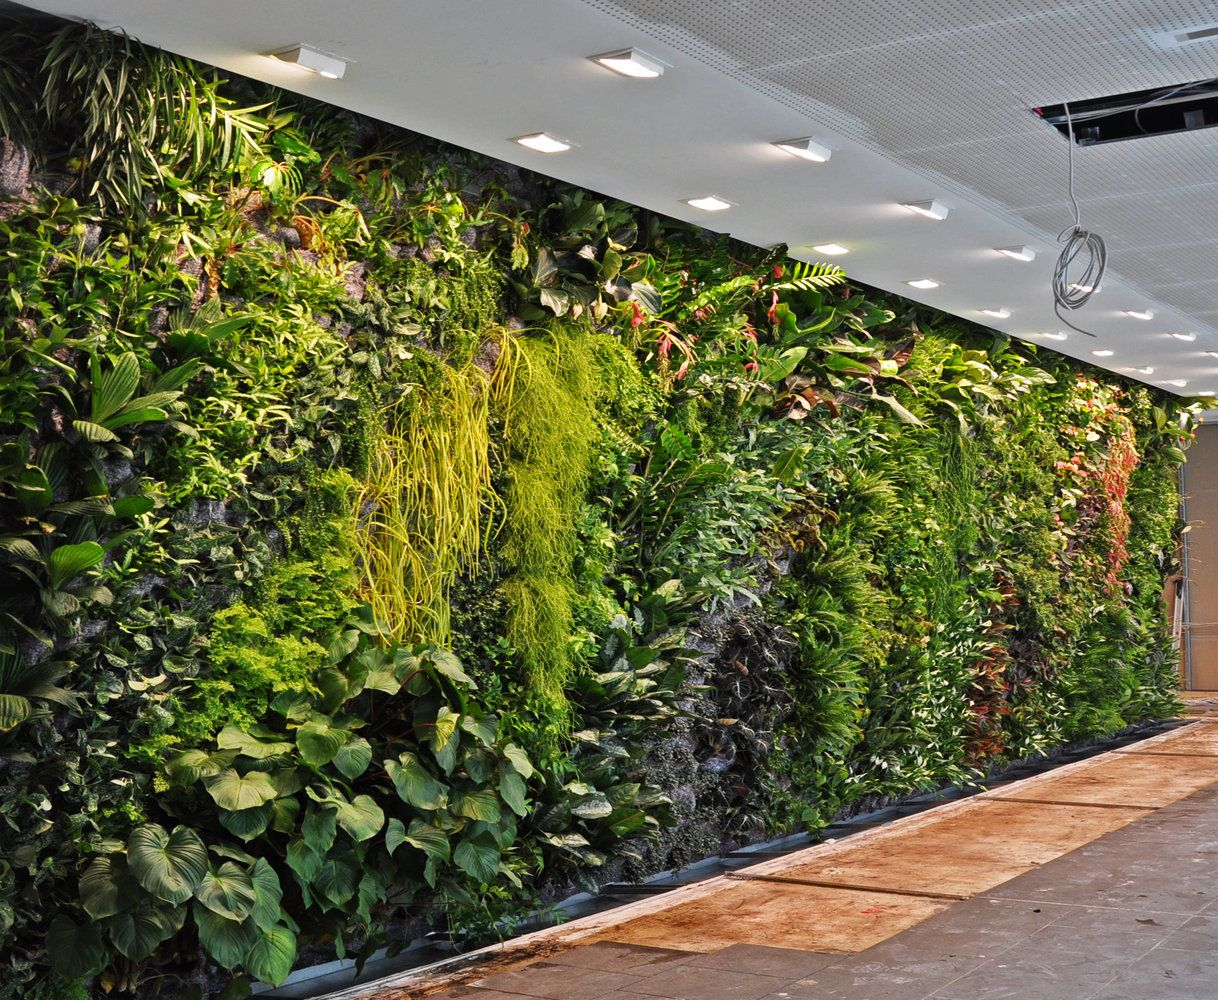 17 Amazing Vertical Garden Designs Vertical garden